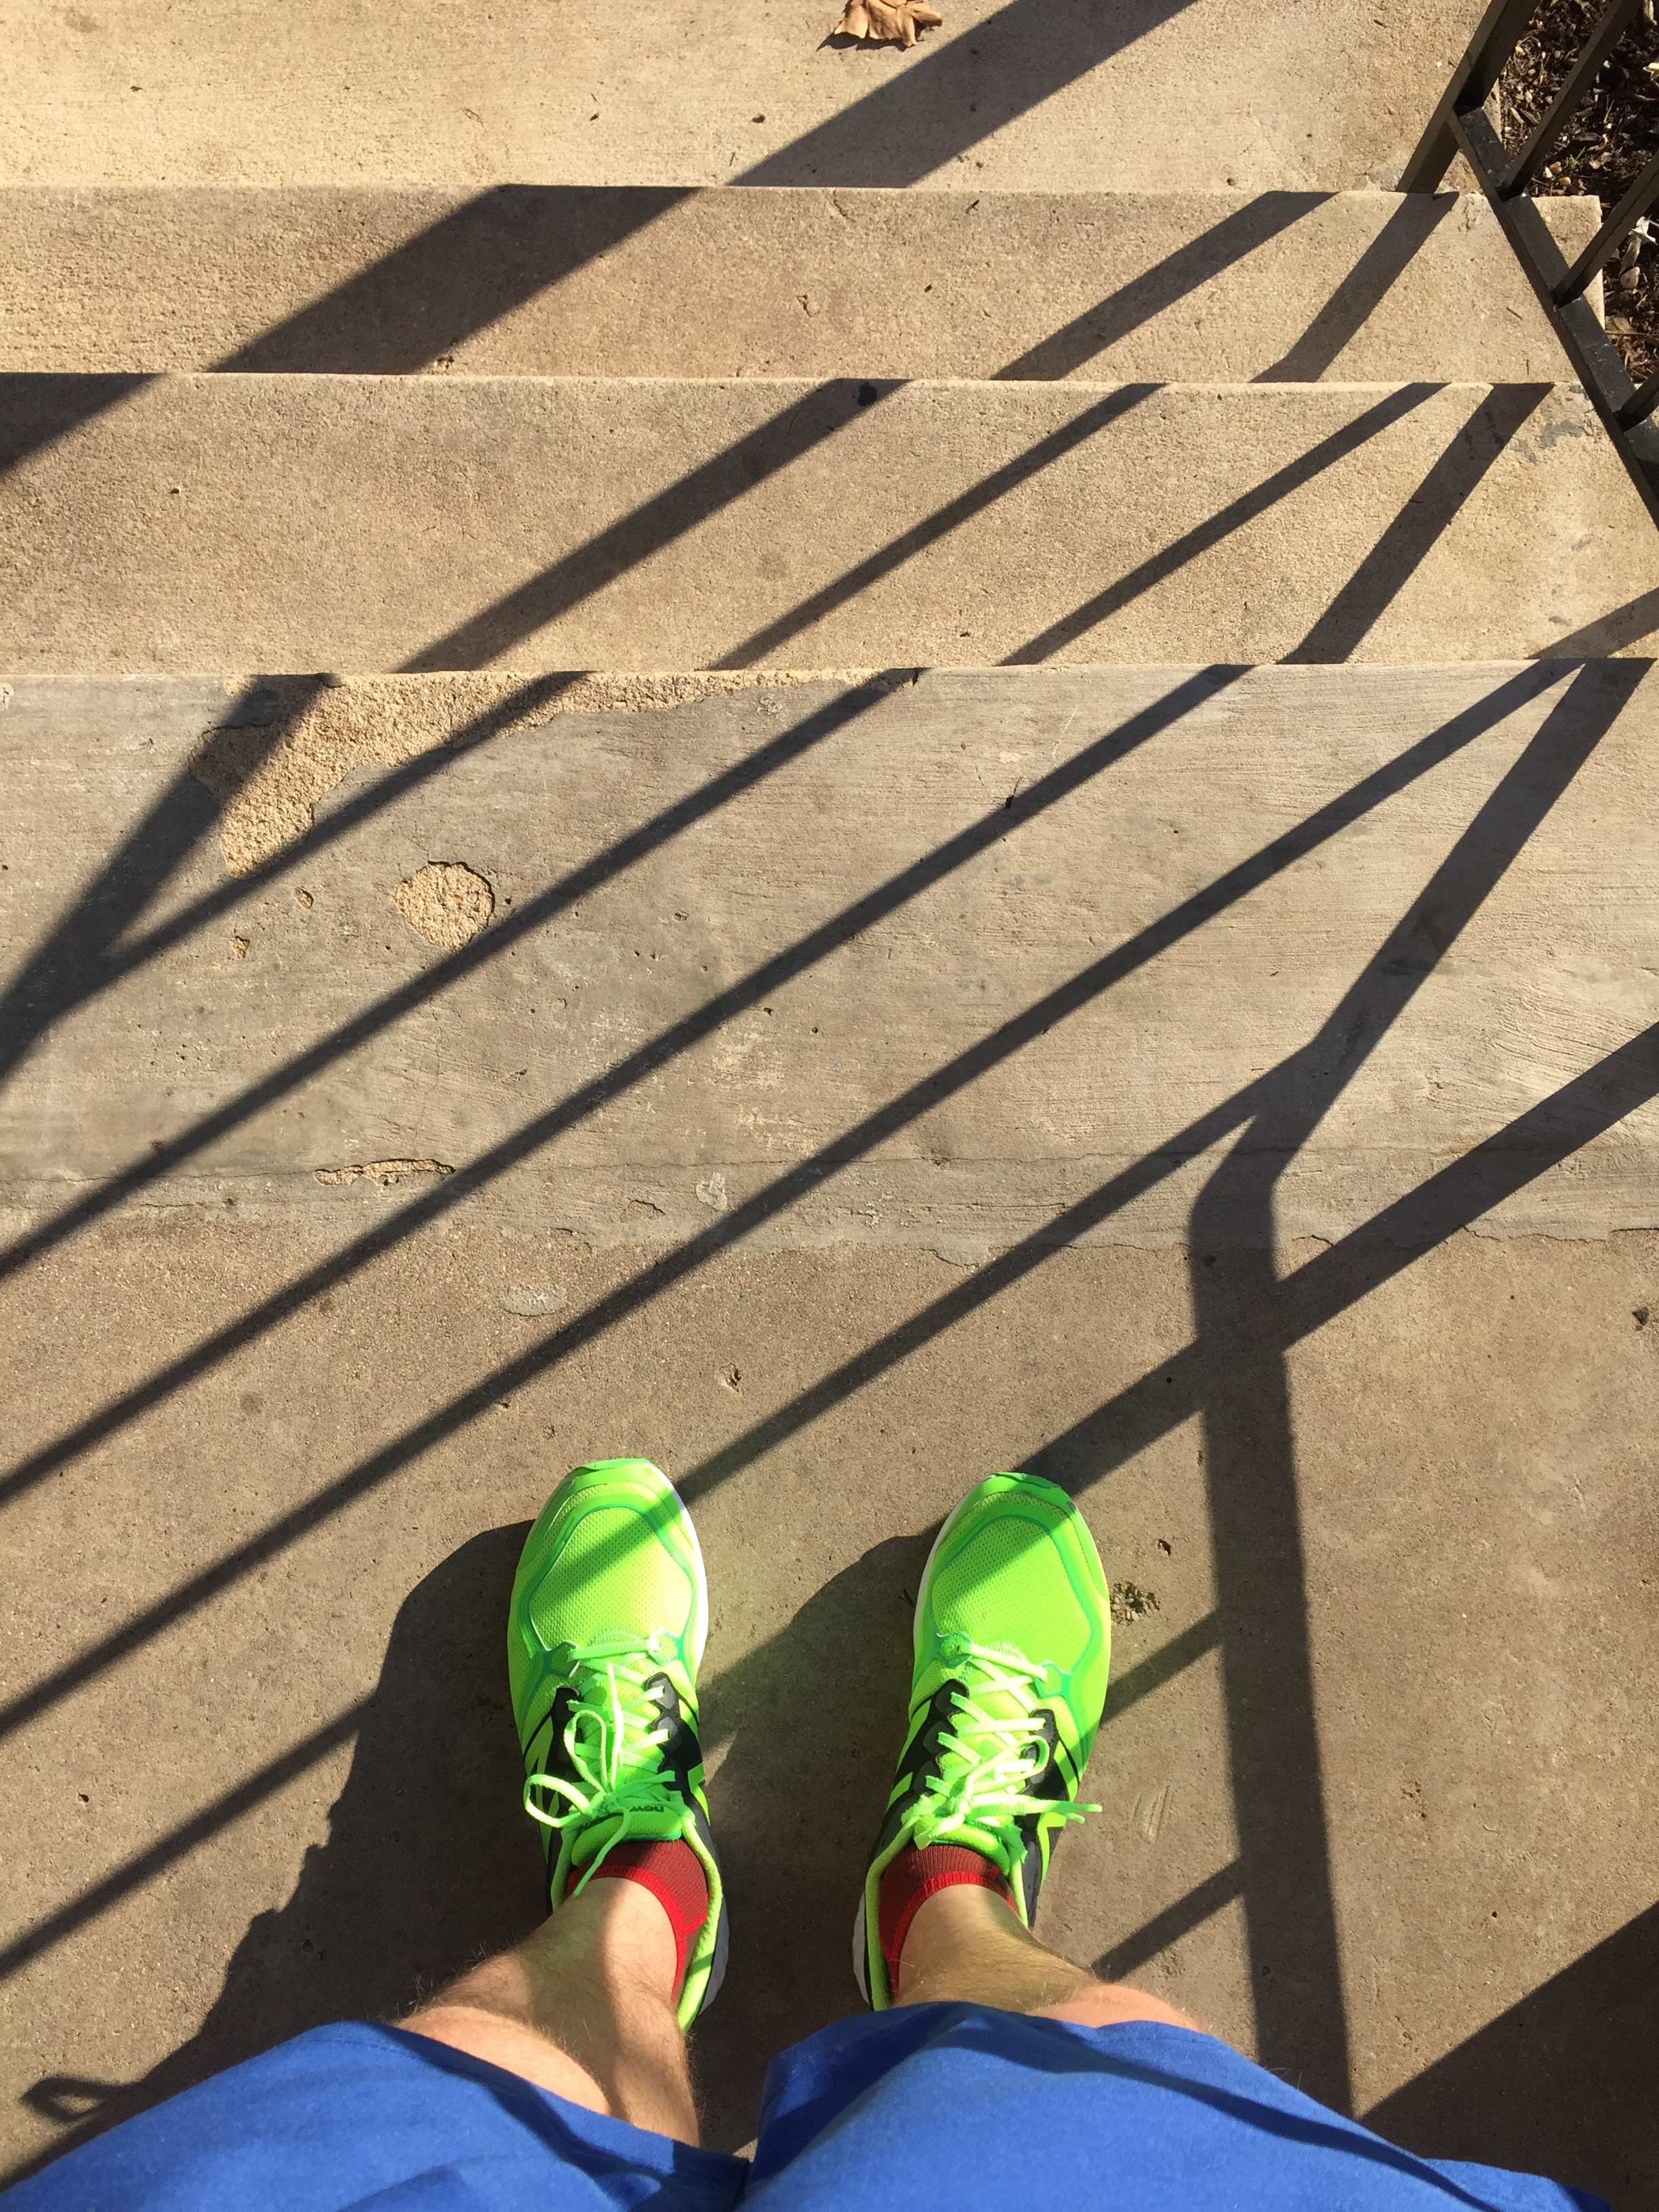 Running Shoes on Stairs